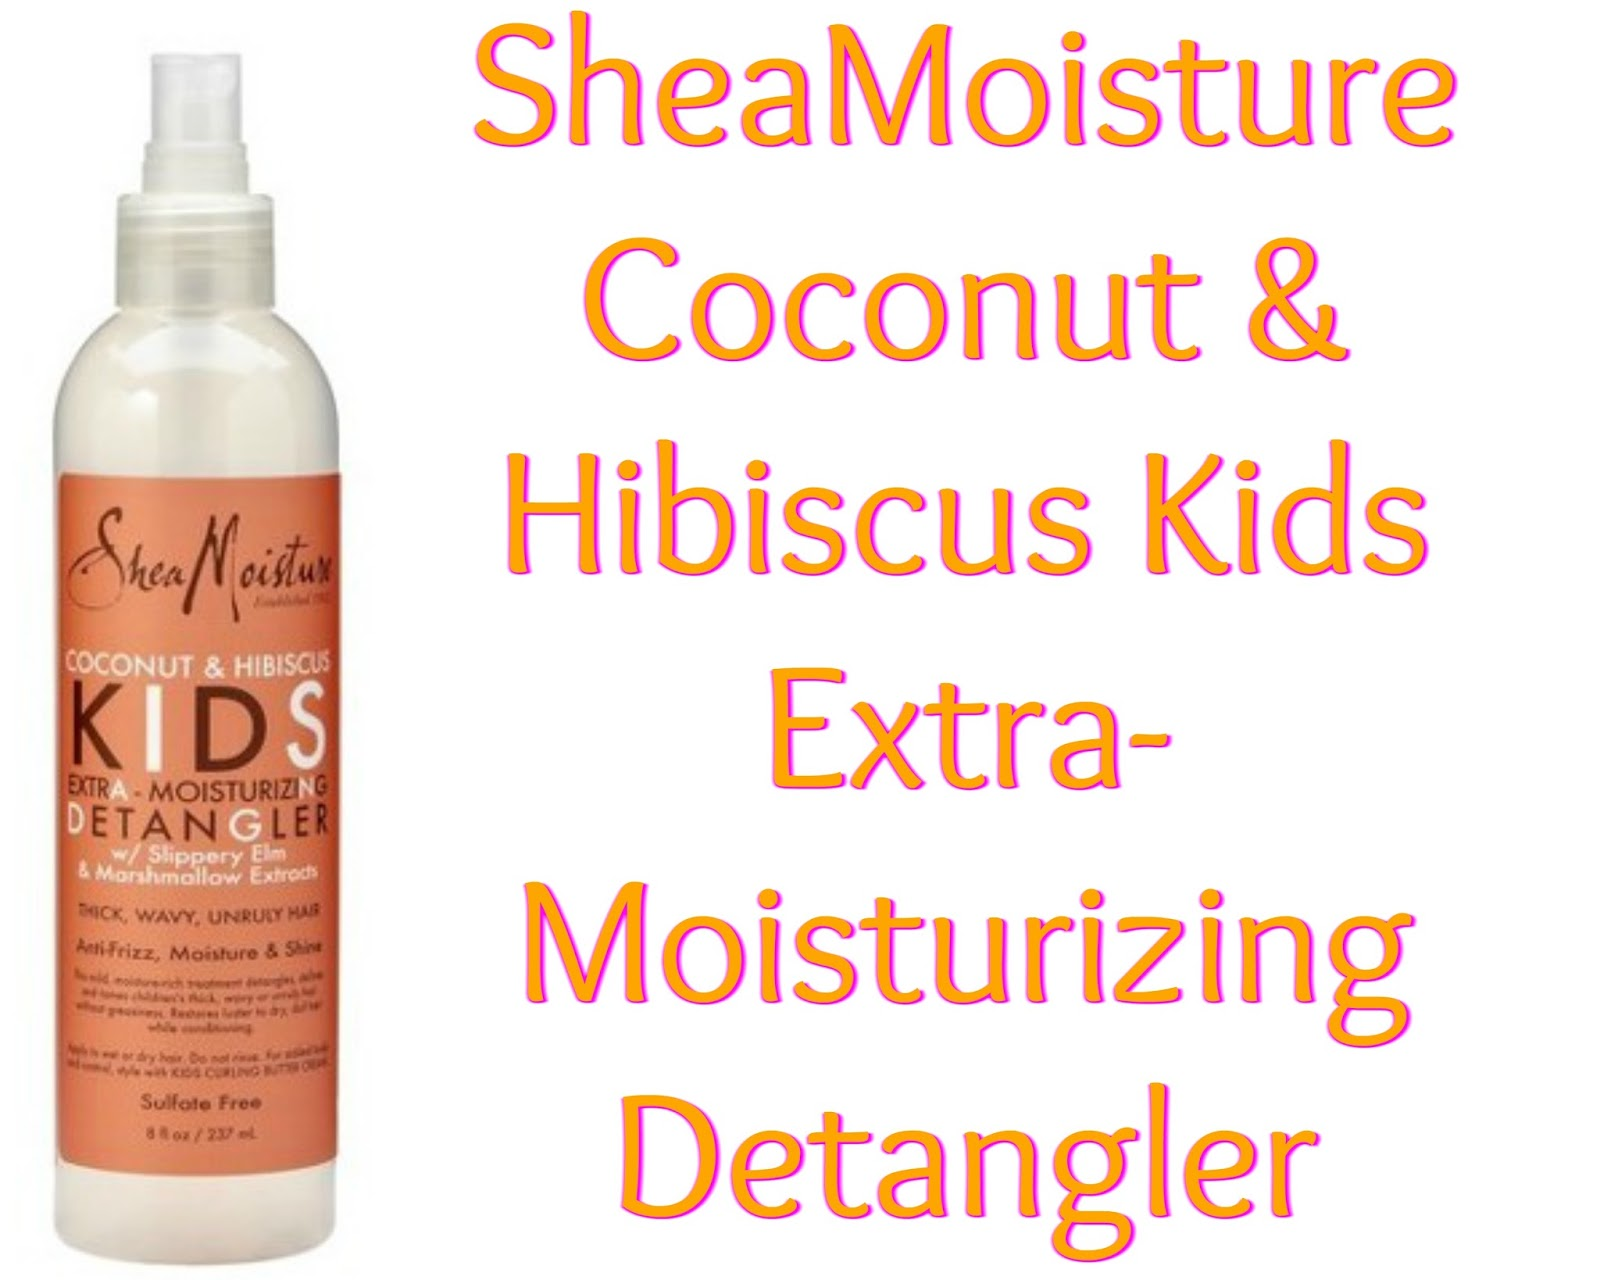 Click here to buy SheaMoisture® Coconut & Hibiscus Kids Extra-Moisturizing Detangler to tame those tangles.